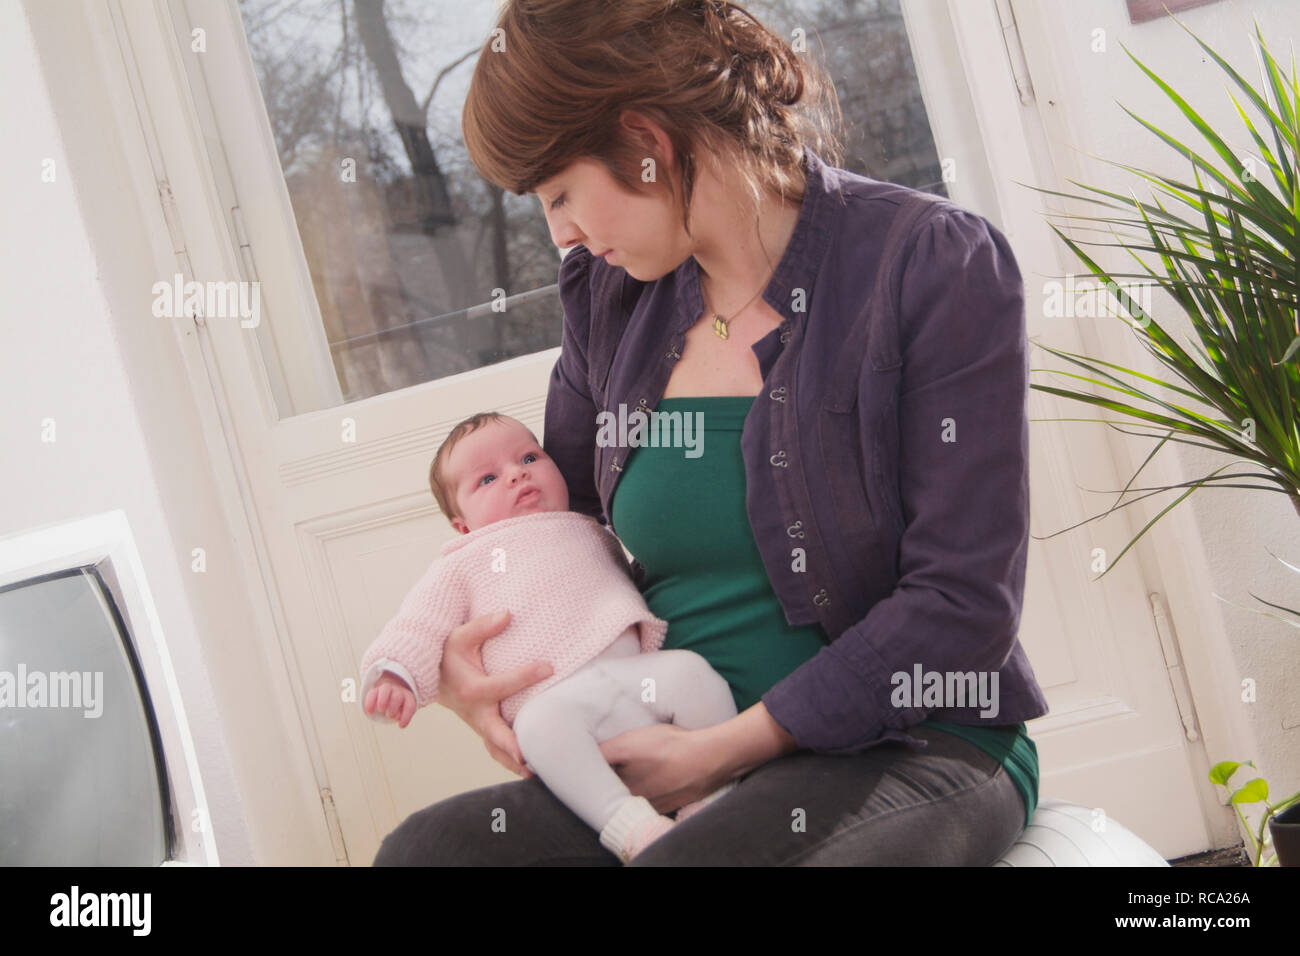 Junge Mutter hält ihre neugeborene Tochter im Arm, das Kind ist 12 Tage alt | young mother holding her new born baby in her arms - the baby ist 12 day Stock Photo